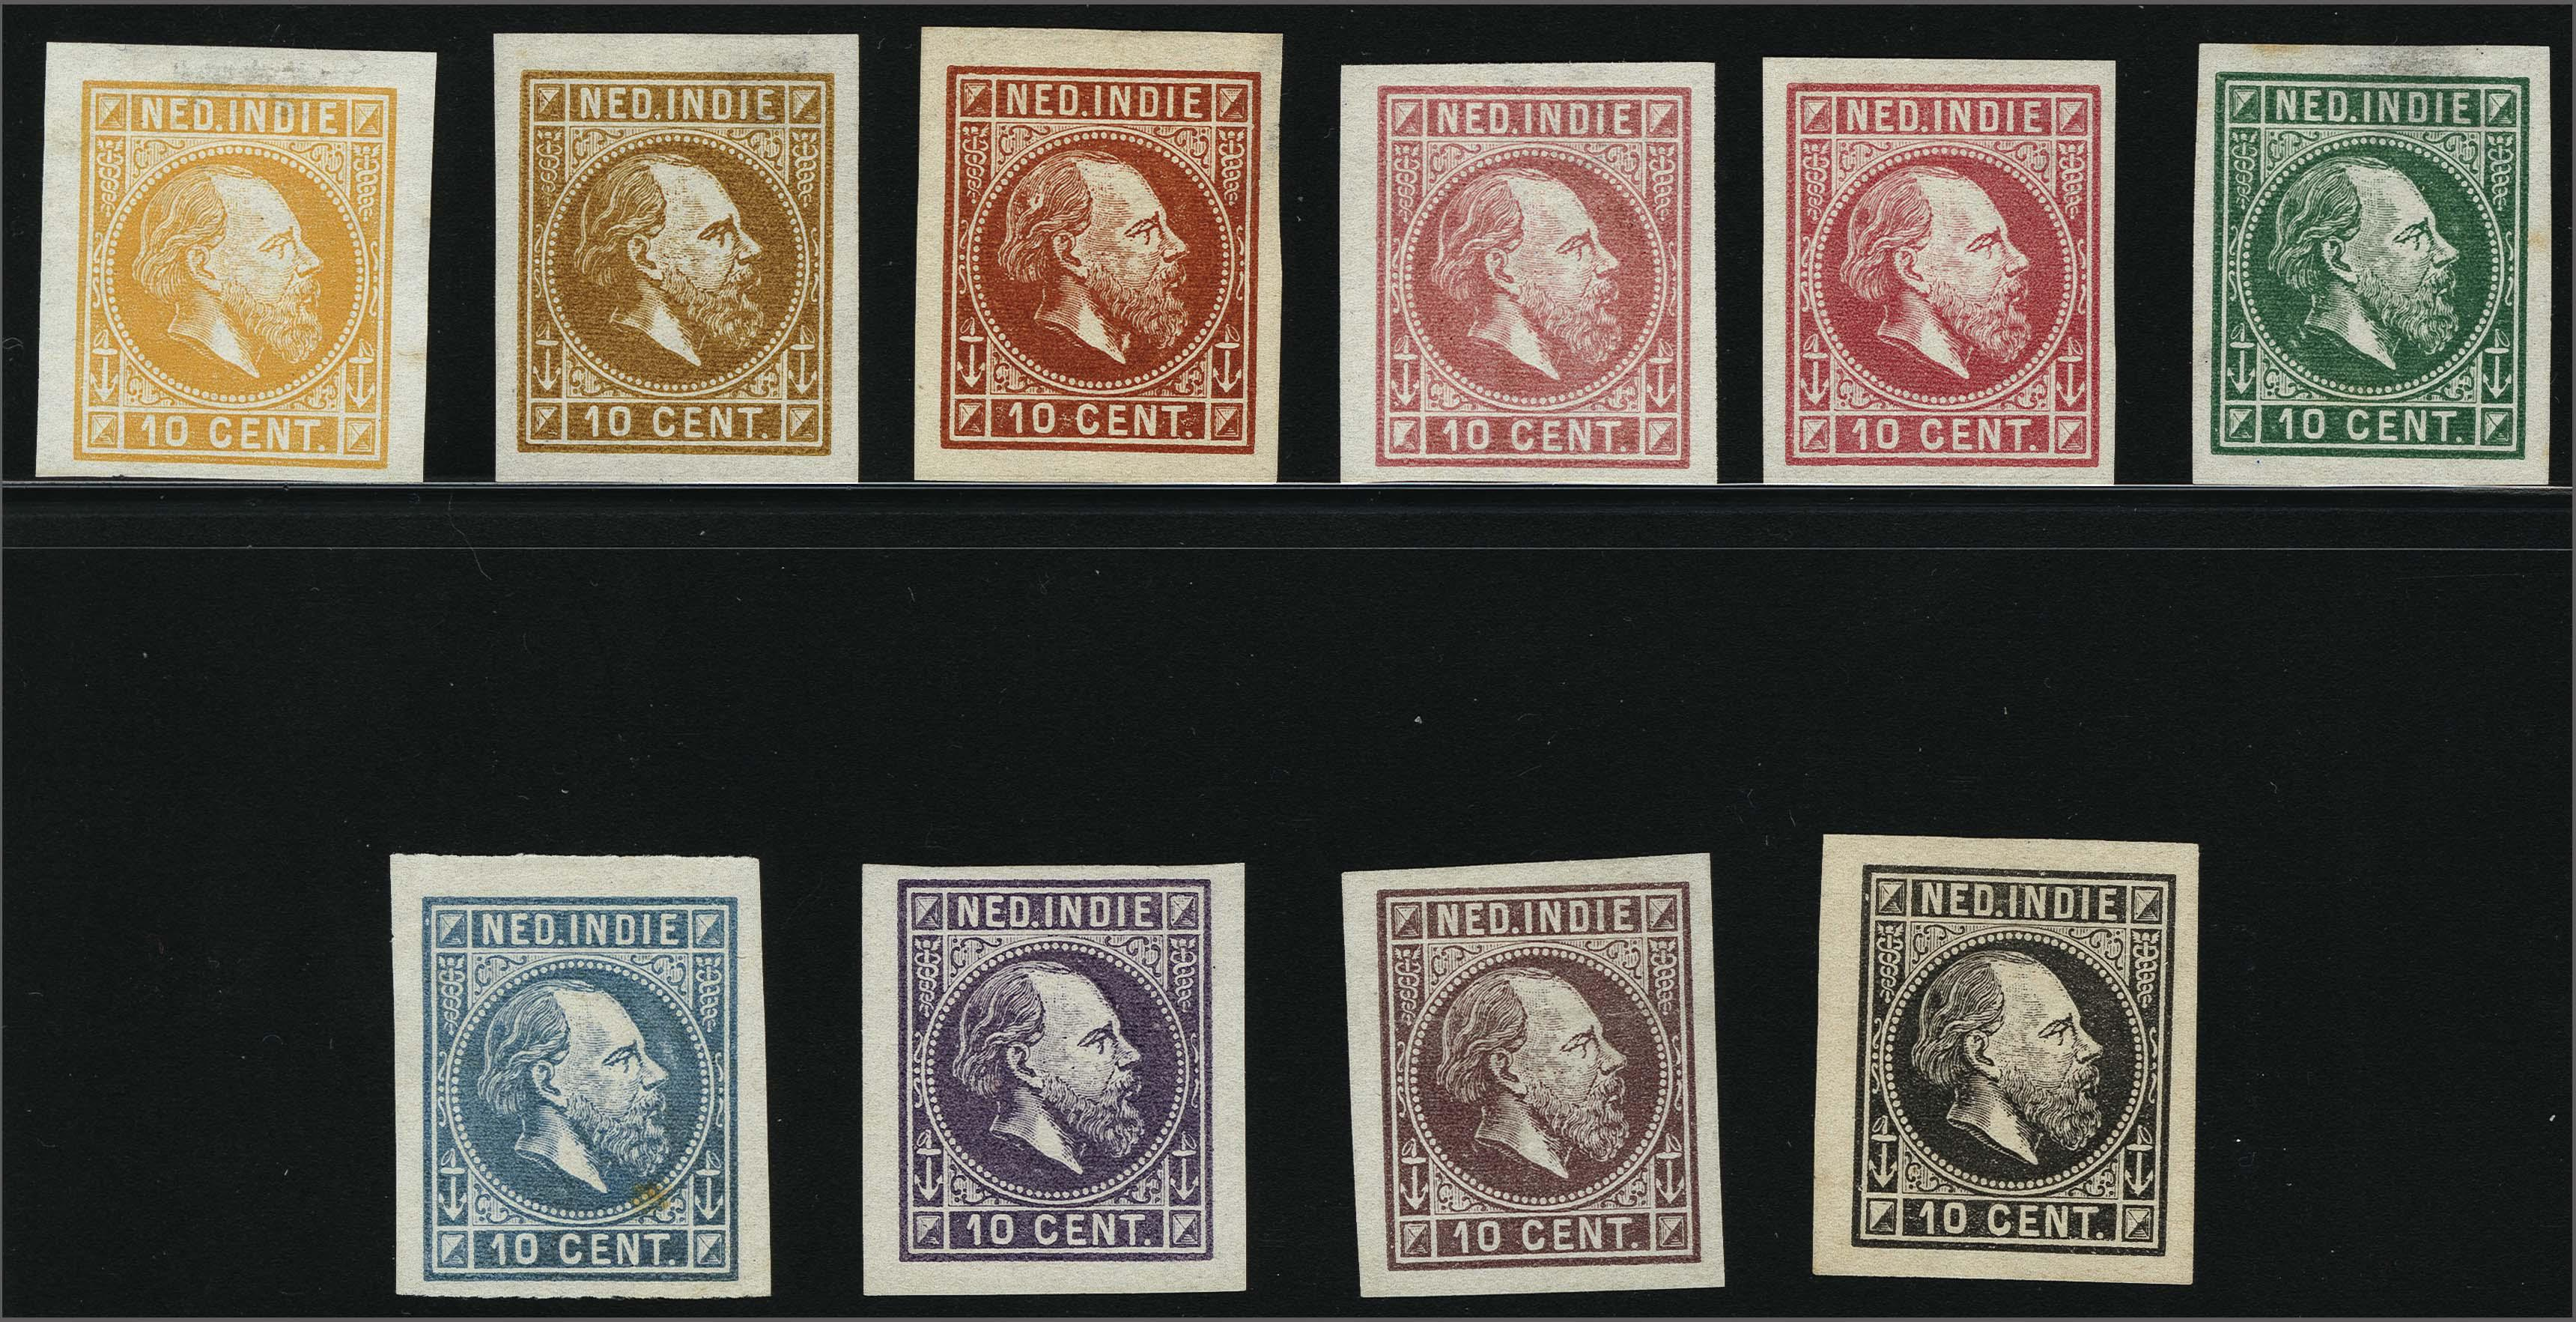 Lot 3304 - Netherlands and former colonies Netherlands Indies -  Corinphila Veilingen Auction 250-253 - Day 4 - Proofs of Netherlands former colonies